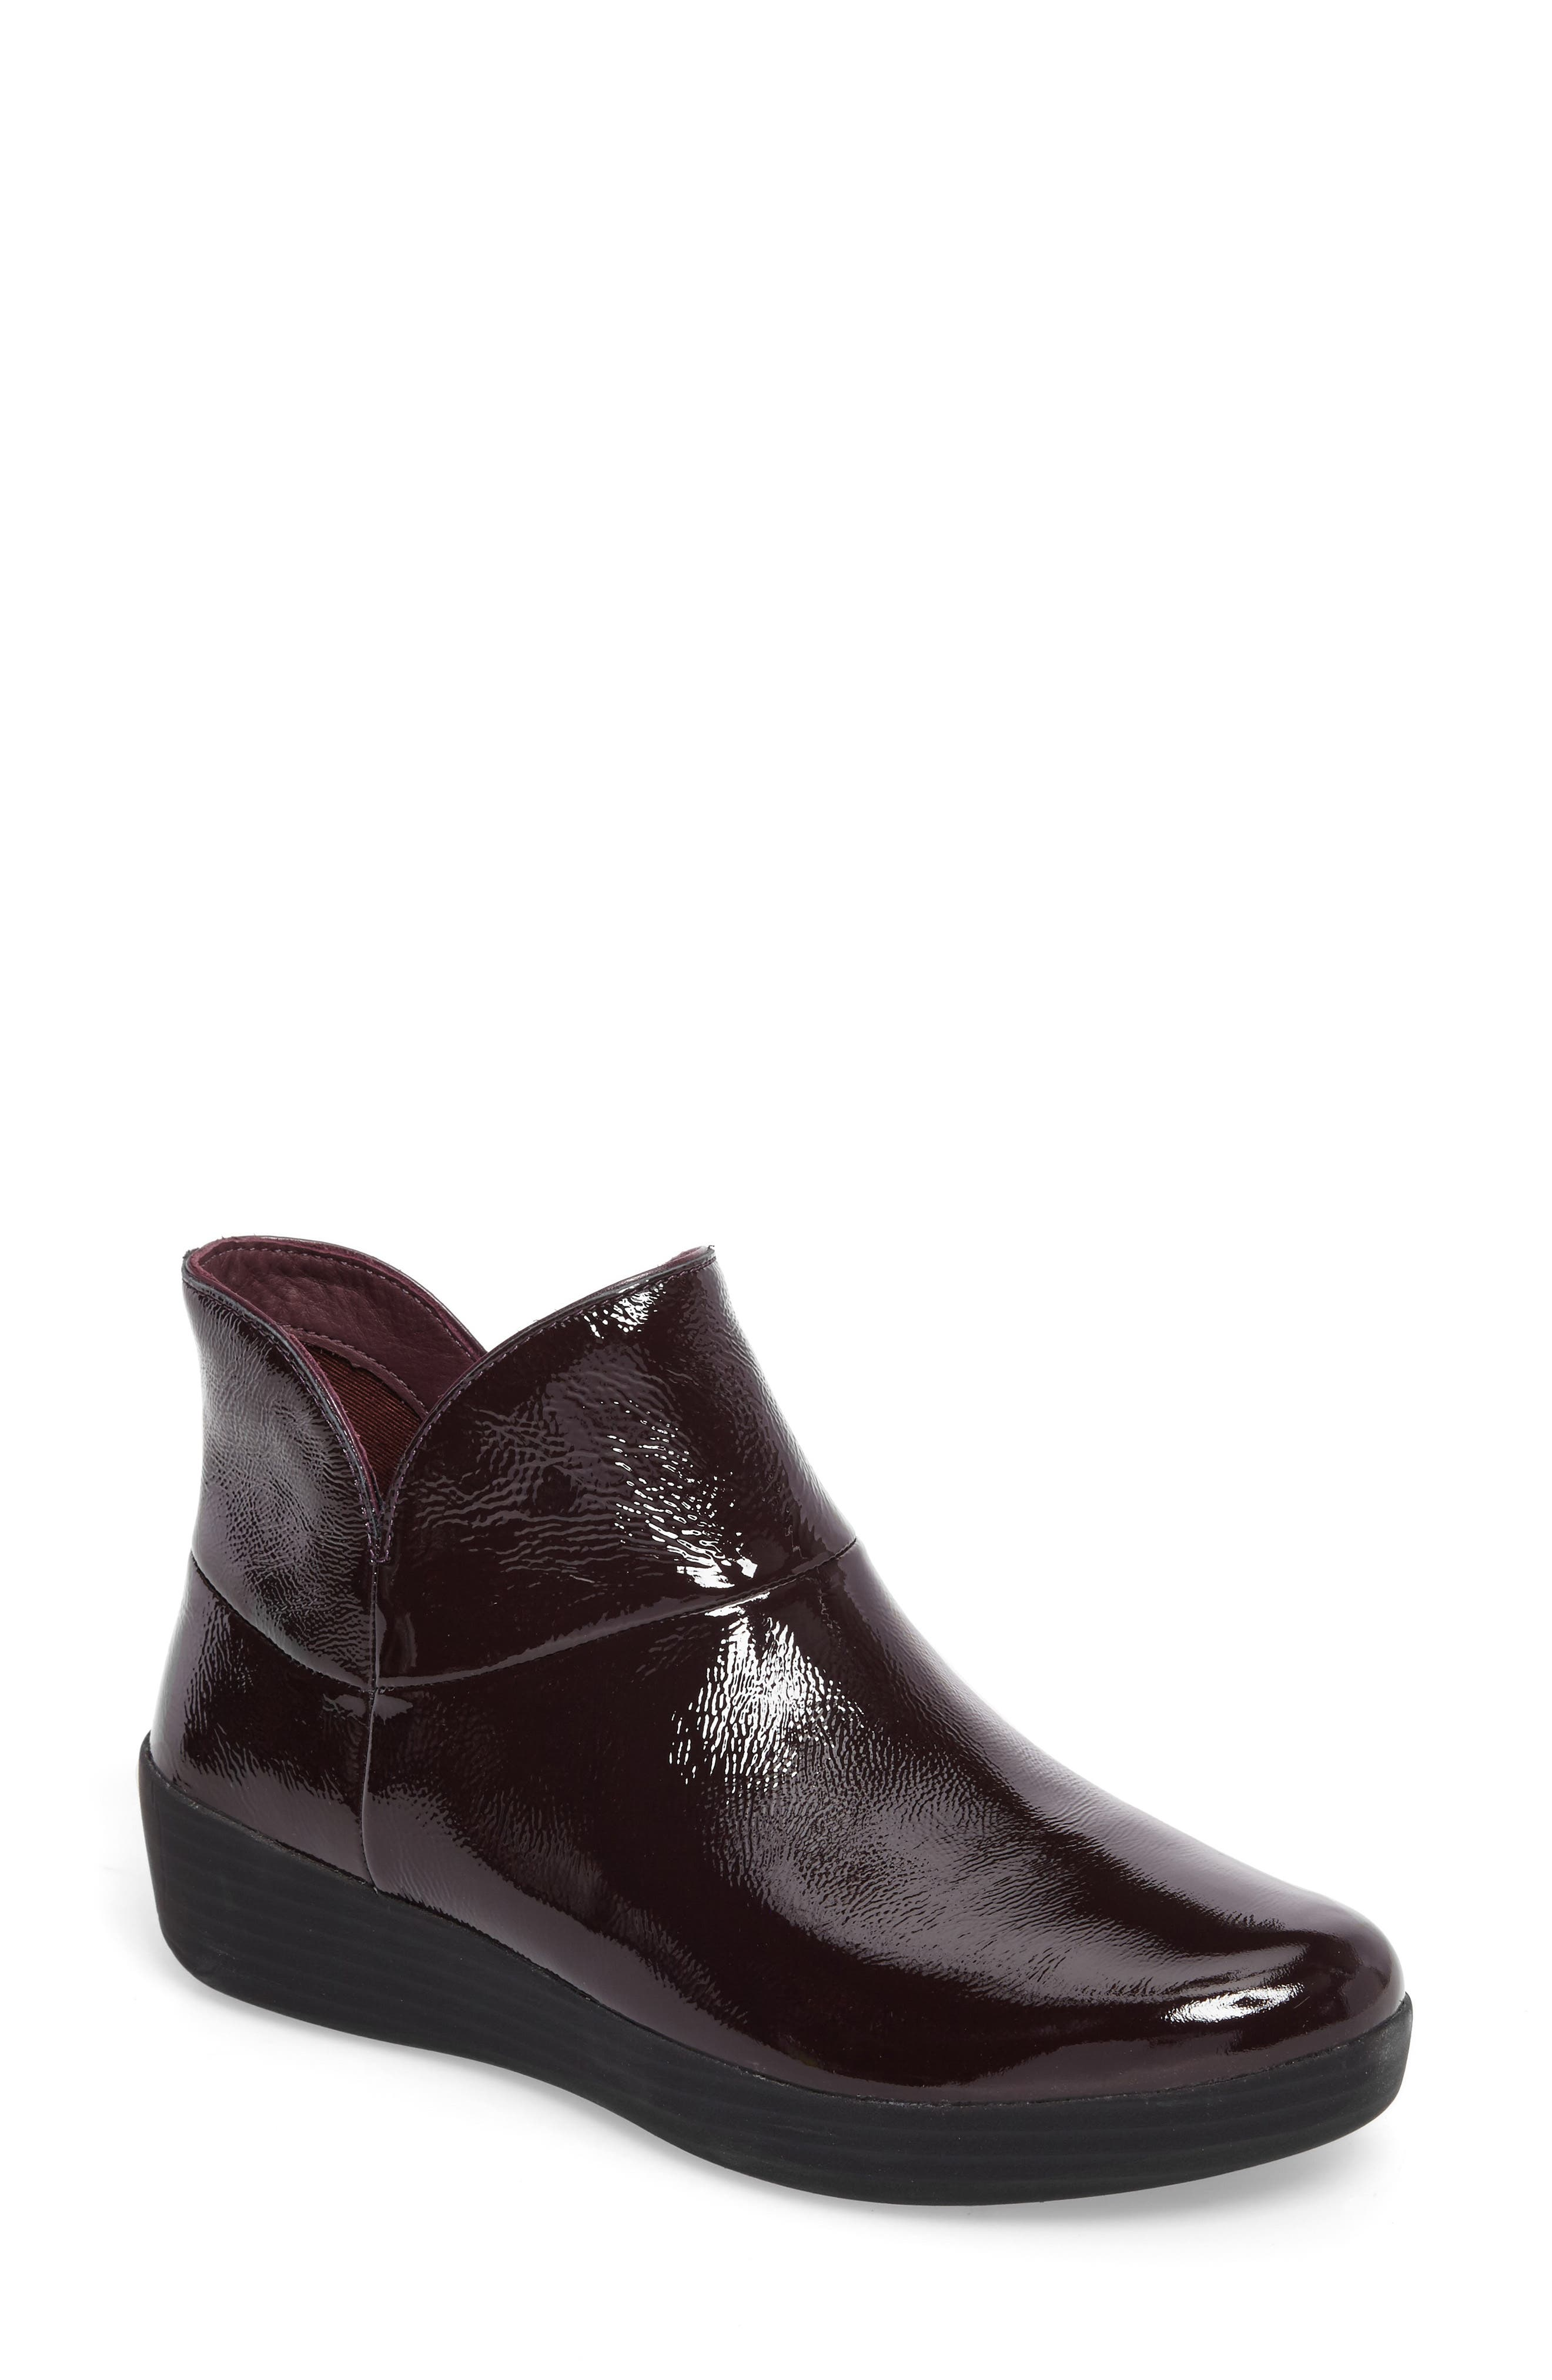 Supermod<sup>™</sup> II Ankle Boot,                             Main thumbnail 1, color,                             547